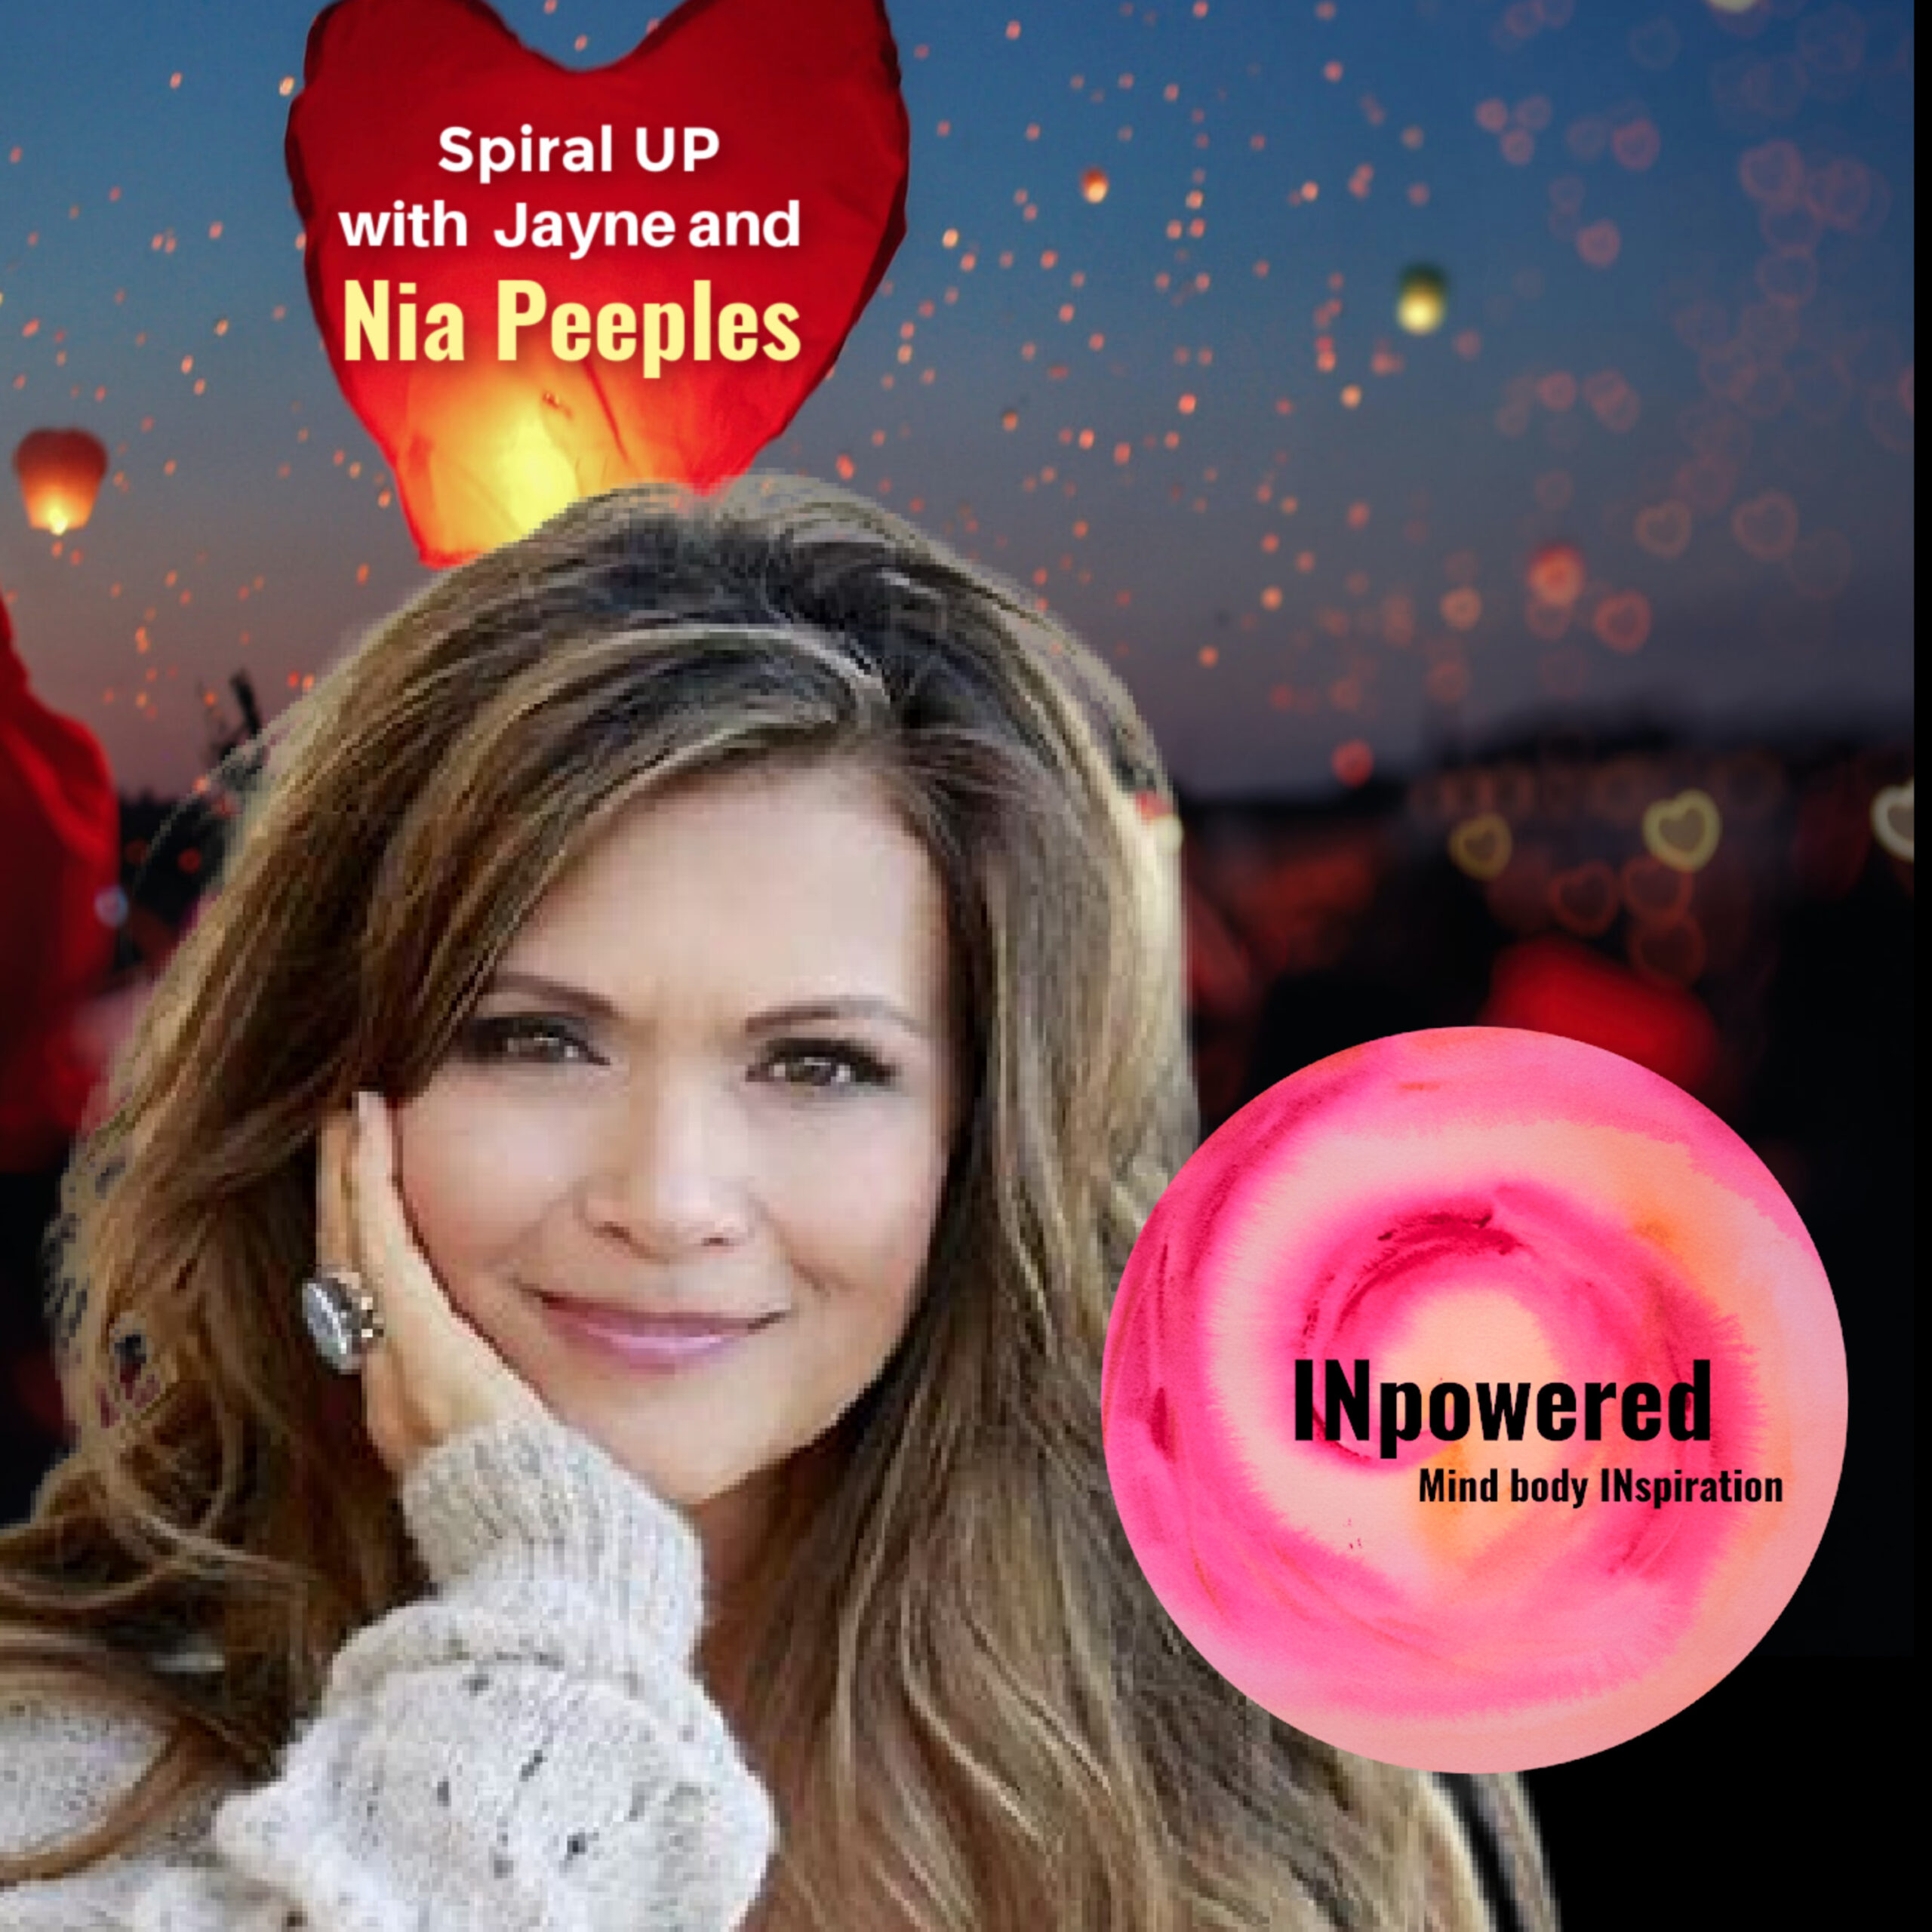 Nia Peeples – Beyond Hollywood into alignment and inner purpose.